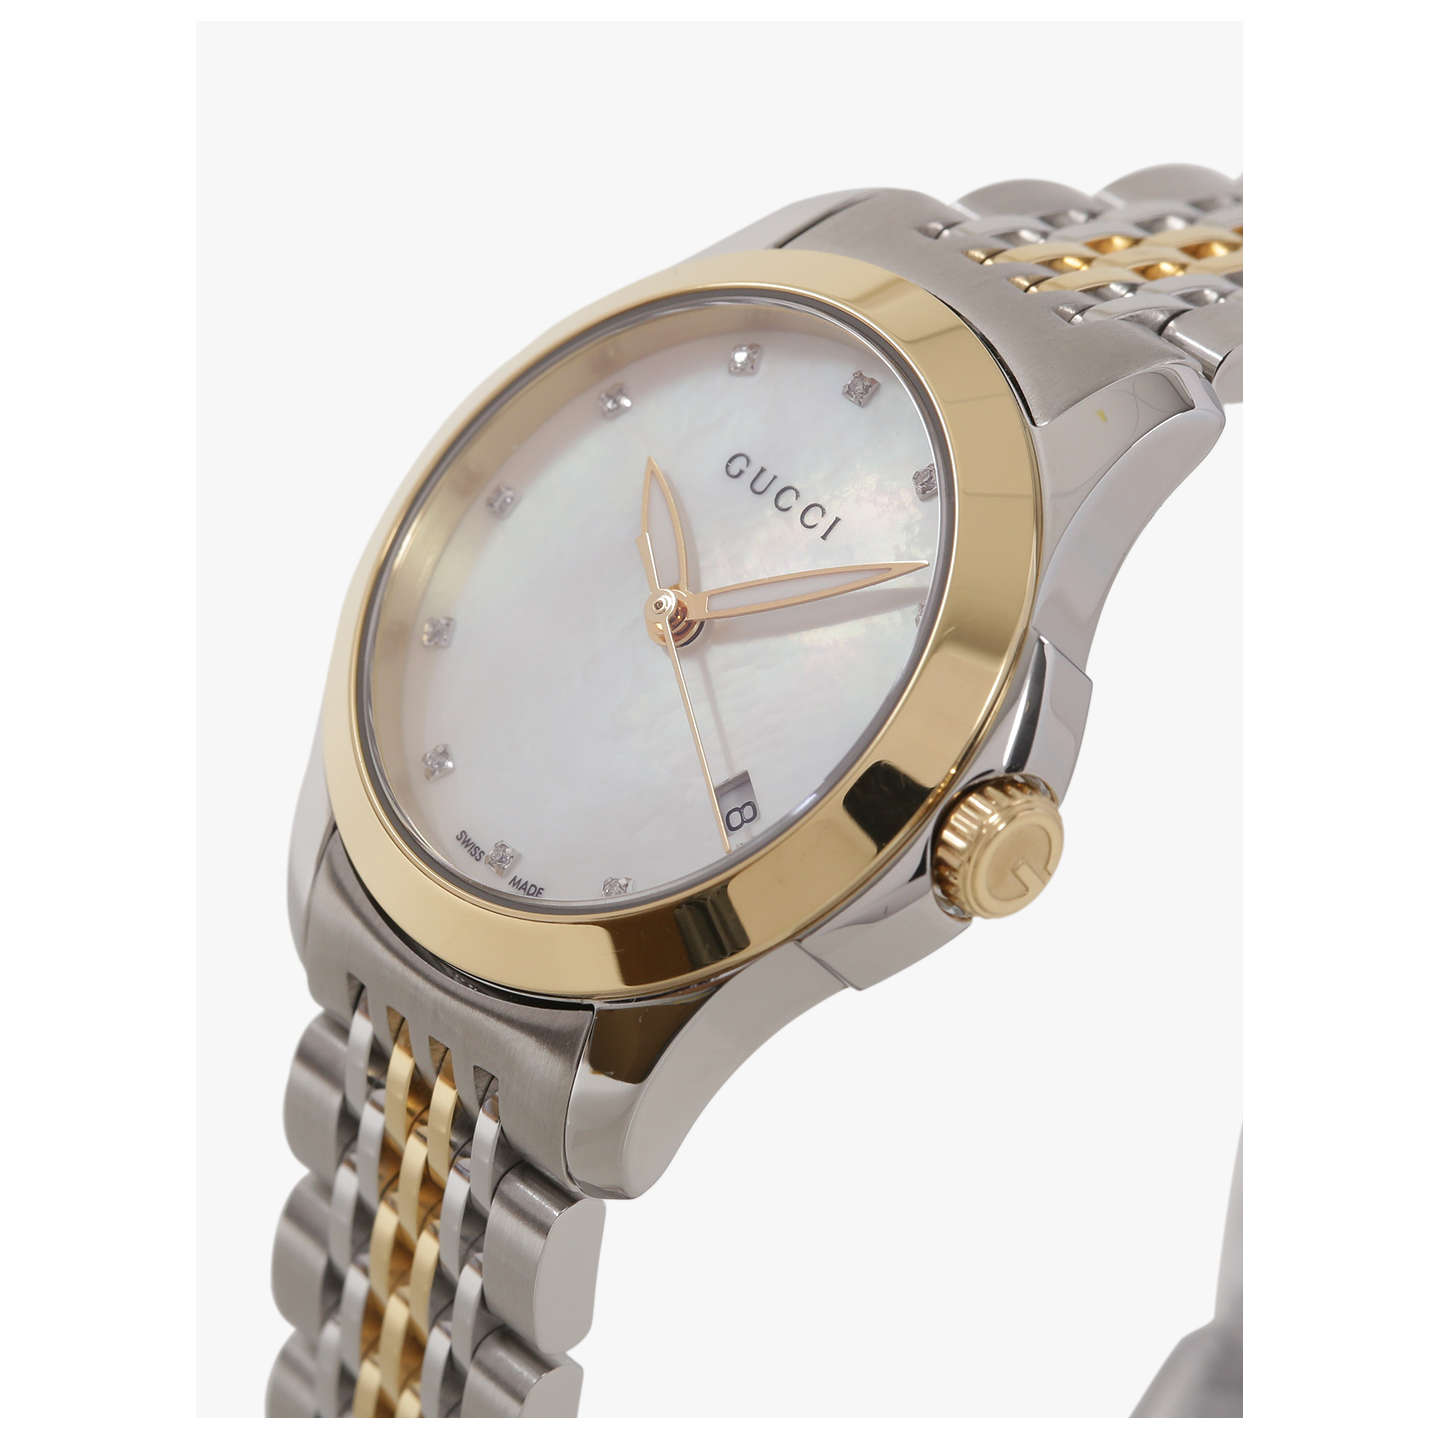 BuyGucci YA126513 Women's G-Timeless Mother of Pearl Diamond Two Tone Bracelet Strap Watch, Silver/Gold Online at johnlewis.com